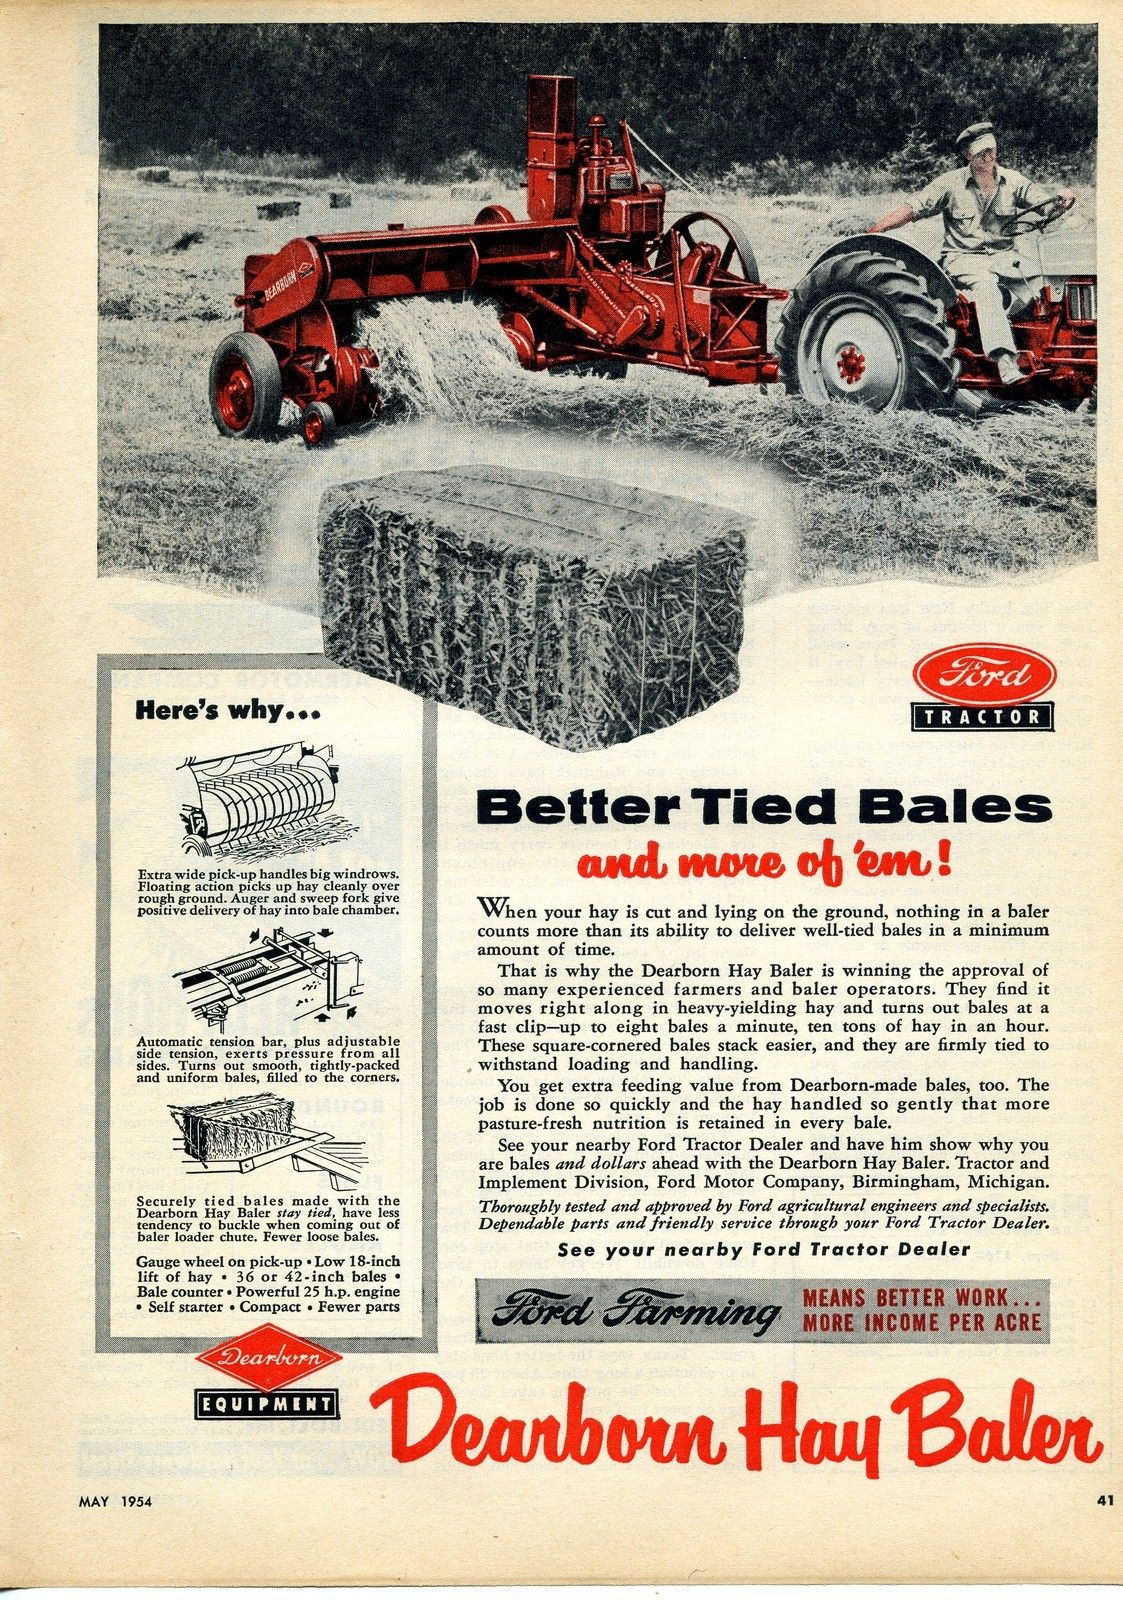 Dearborn Four Row Weeder With Images Ford Tractors Tractors Hay Balers